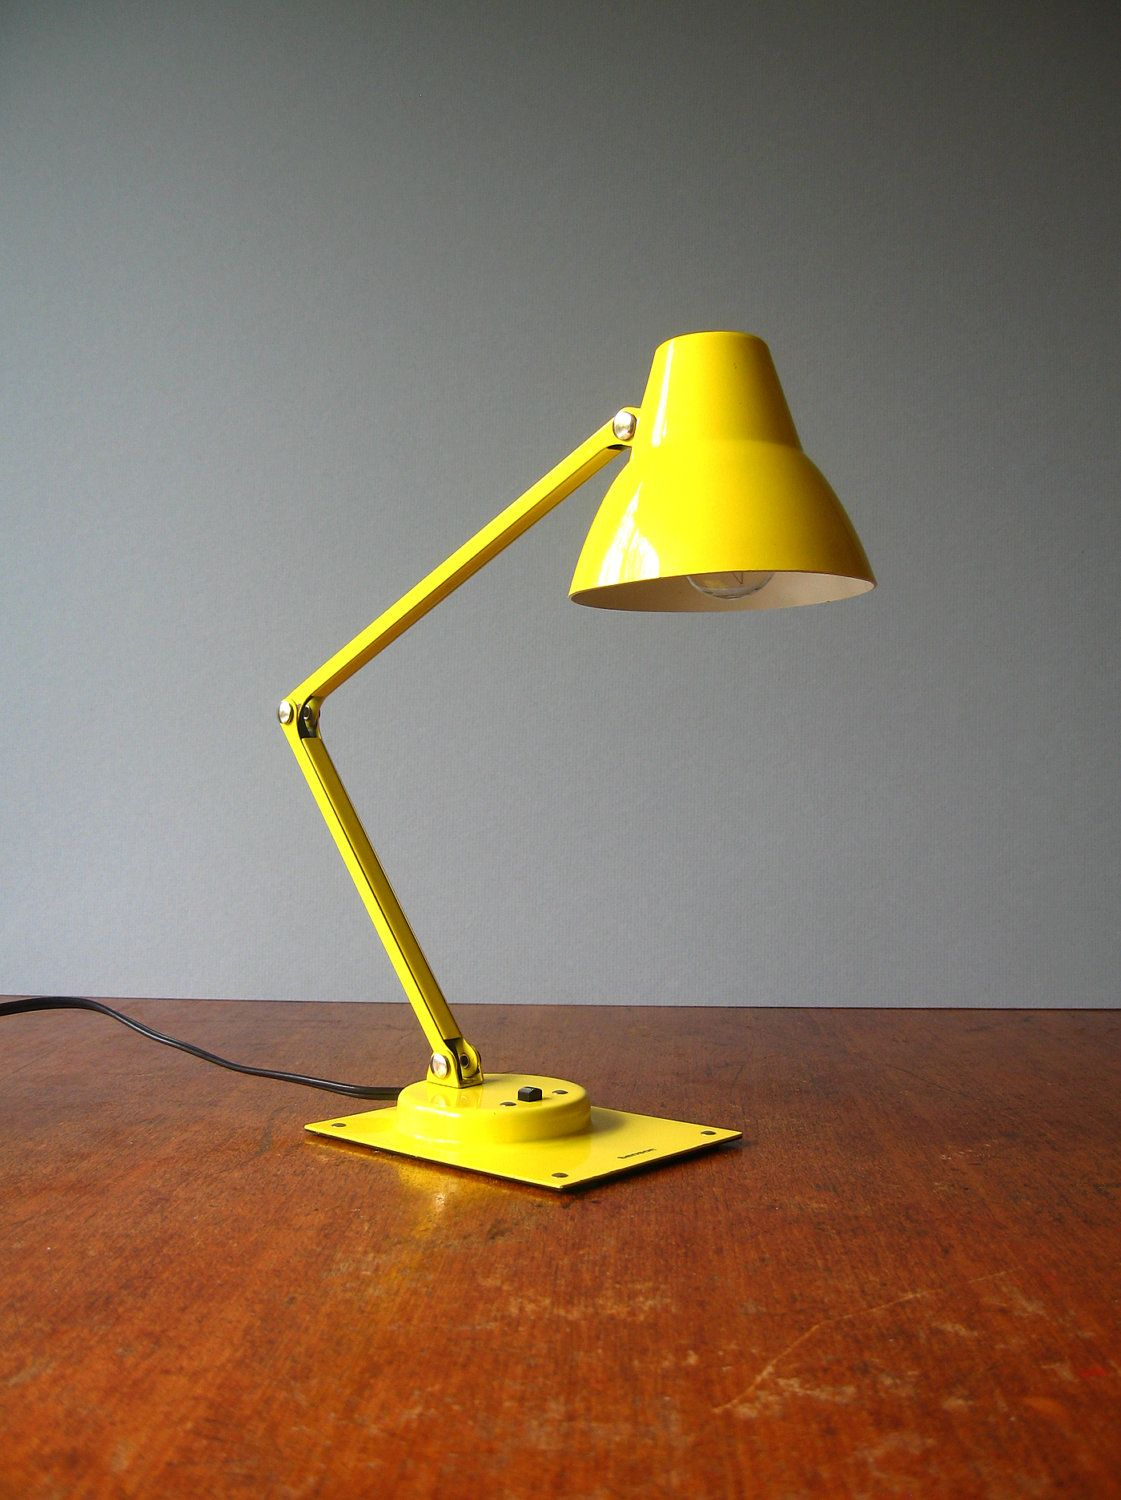 I have Granny's that was on her night stand. Vintage Bright Yellow ...